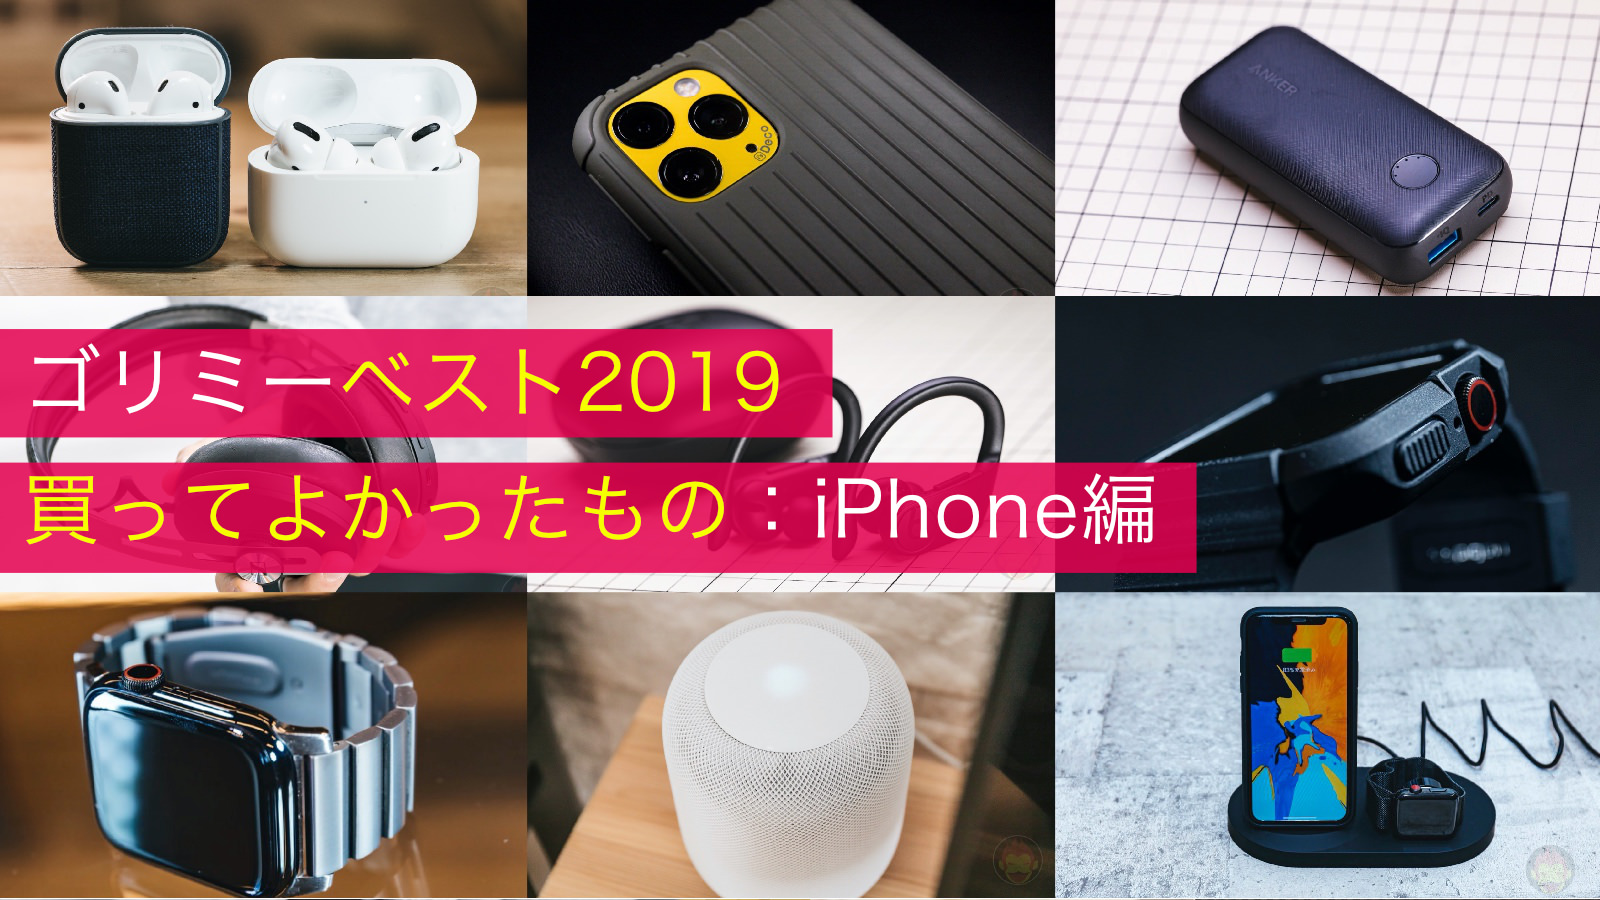 Gorime best iPhone 2019